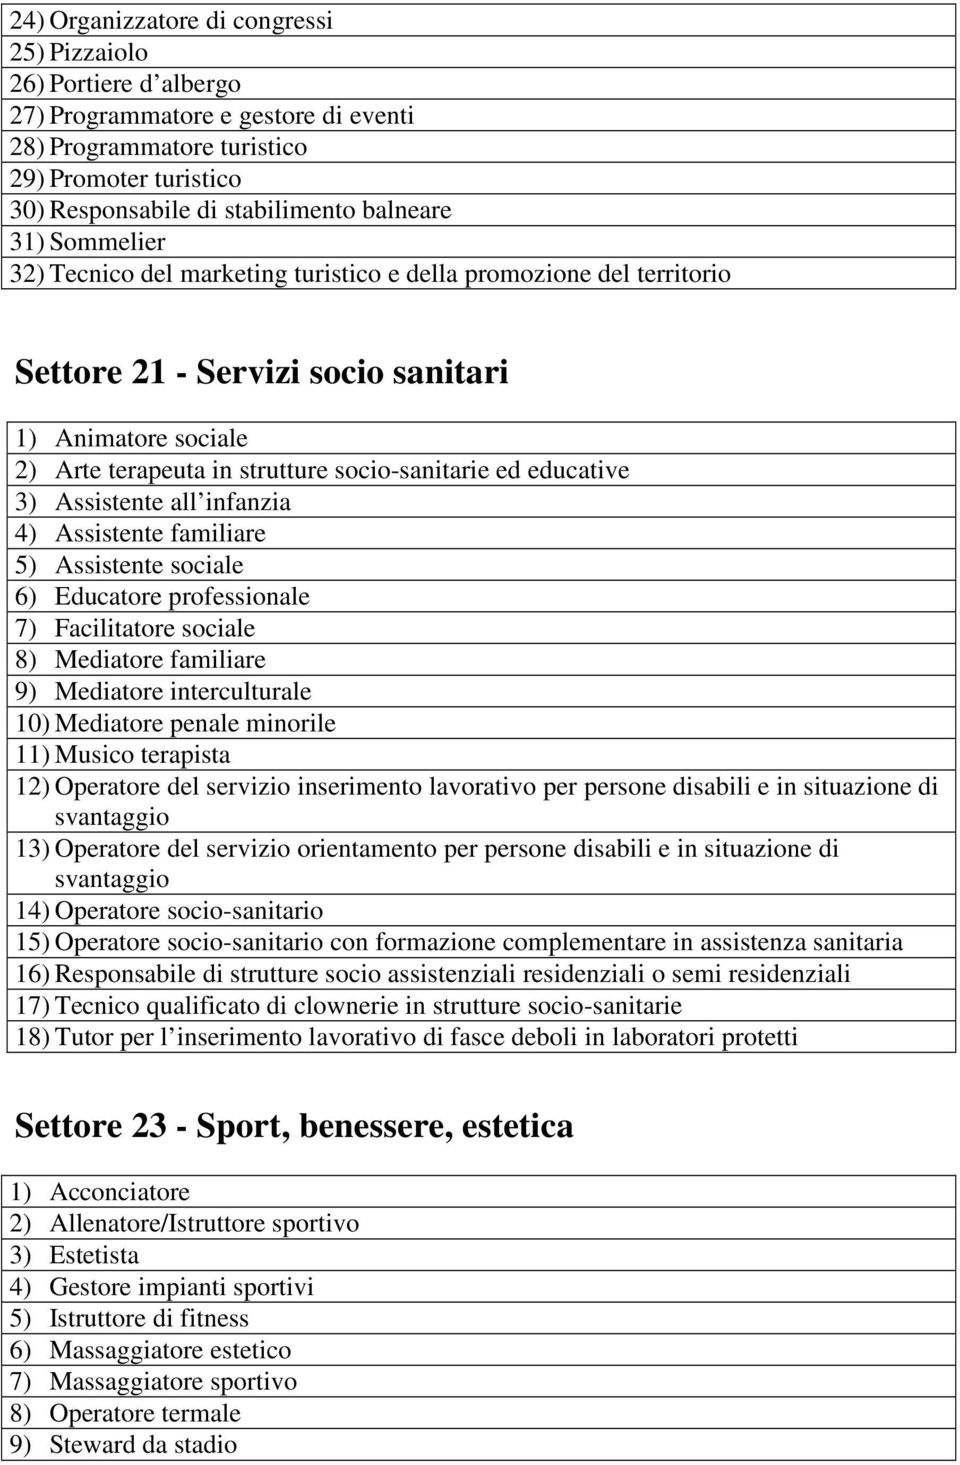 educative 3) Assistente all infanzia 4) Assistente familiare 5) Assistente sociale 6) Educatore professionale 7) Facilitatore sociale 8) Mediatore familiare 9) Mediatore interculturale 10) Mediatore